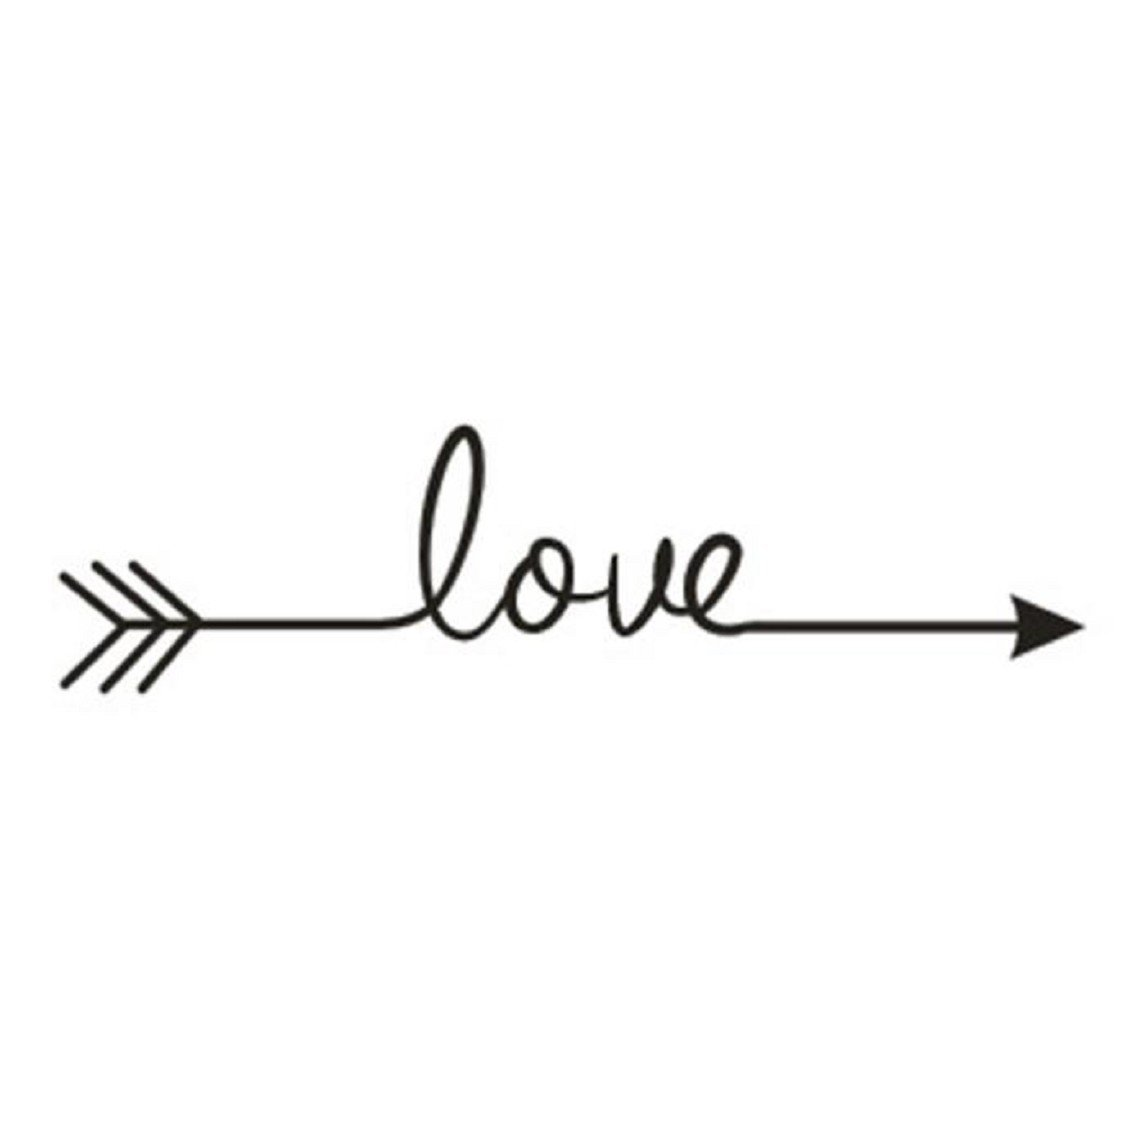 Naladoo Love Arrow Decal Living Room Bedroom Vinyl Carving Wall Decal Sticker IU32566436436